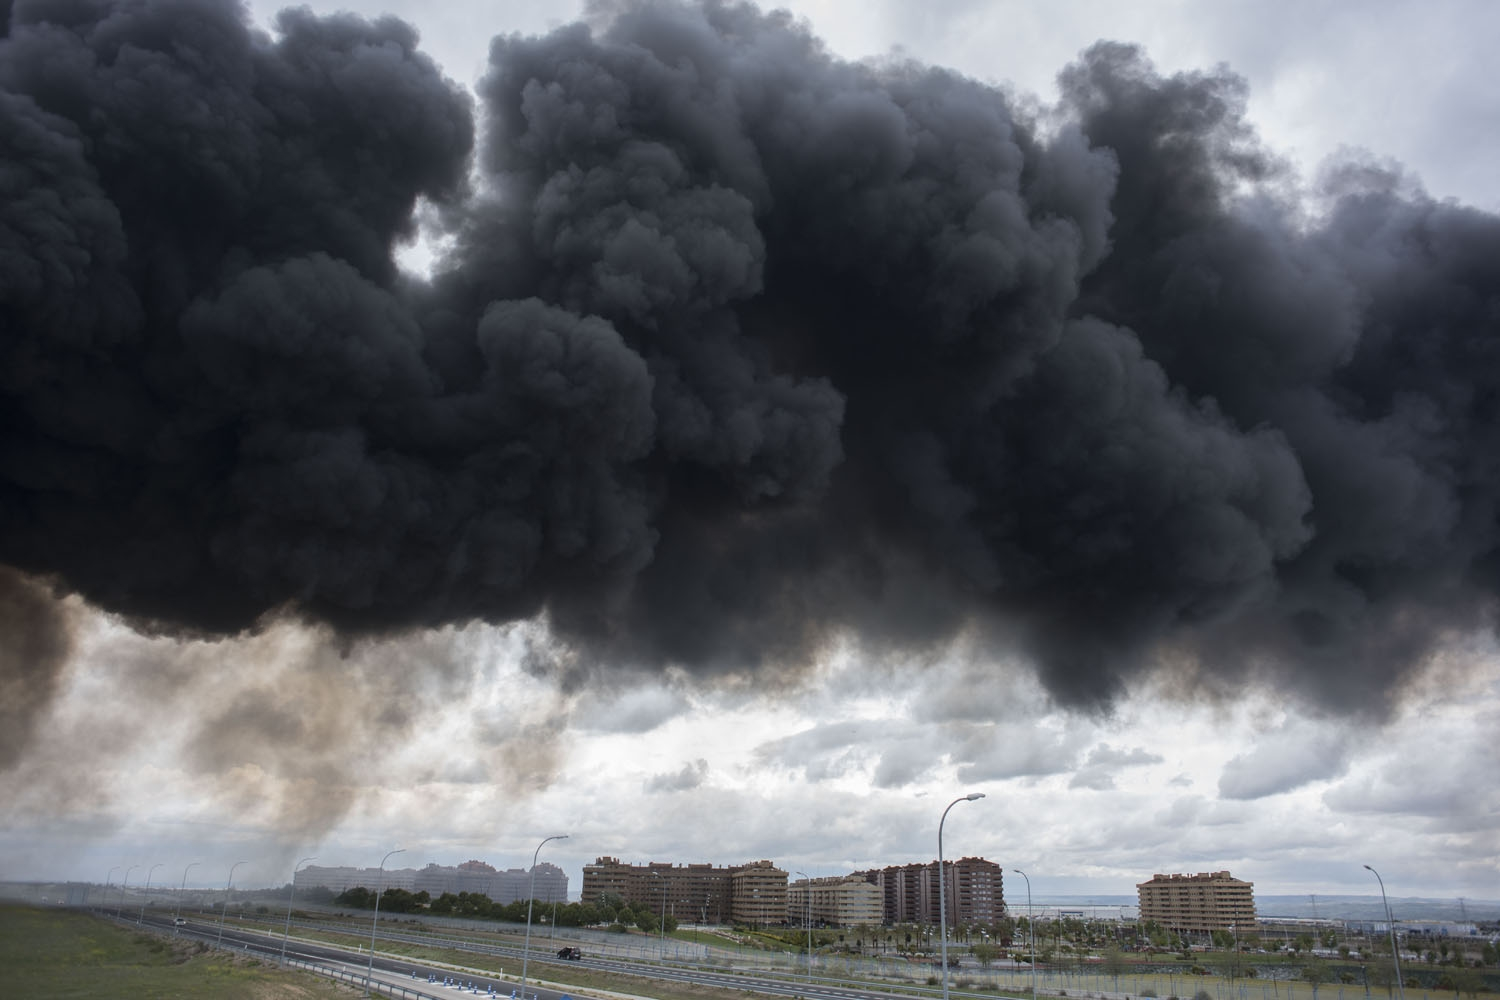 Black clouds of smoke are produced by tyres burning in an uncontrolled dump near the town of Sesena, after a fire brokeout early on May 13, 2016